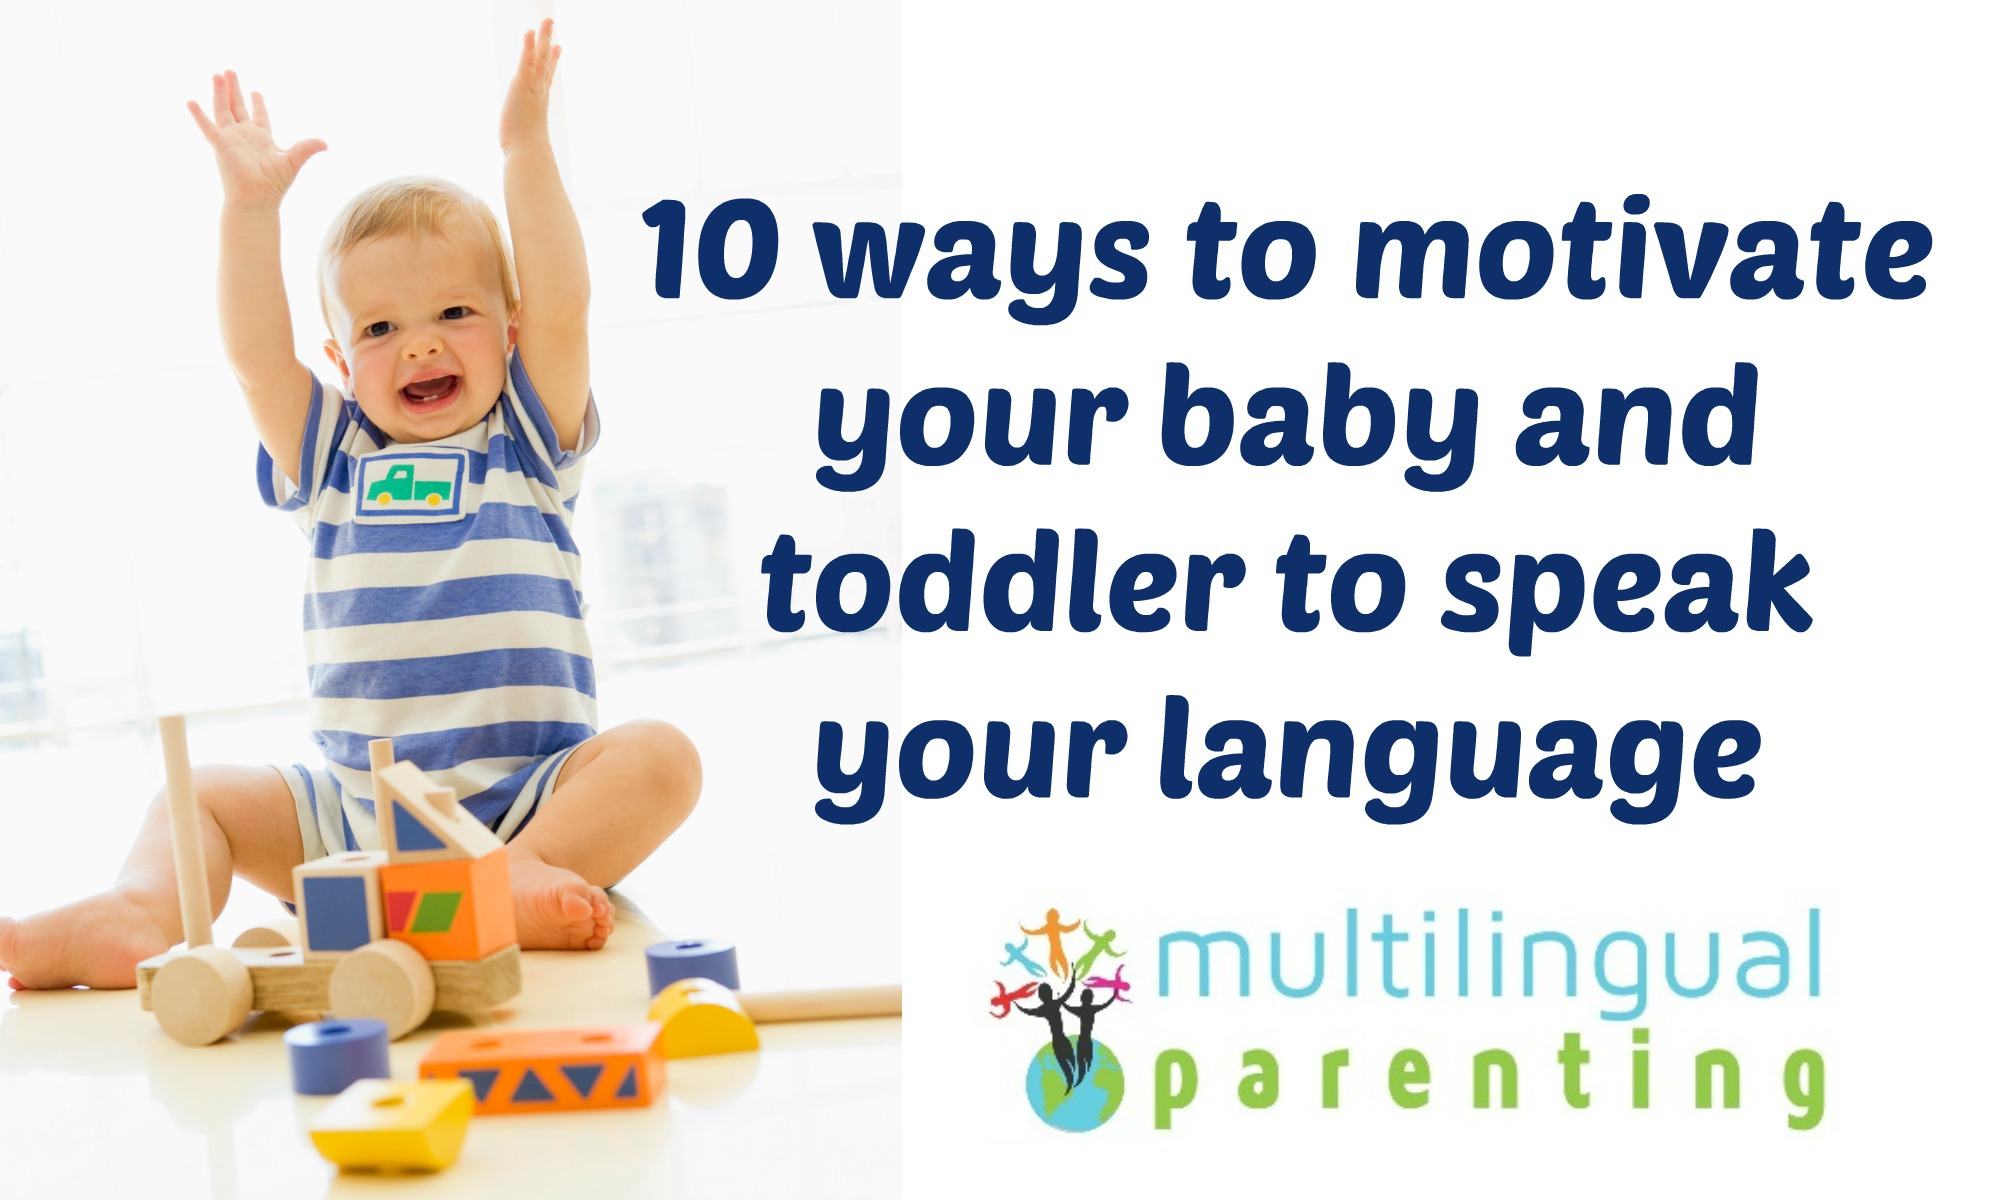 10 ways to motivate a bilingual baby and toddler